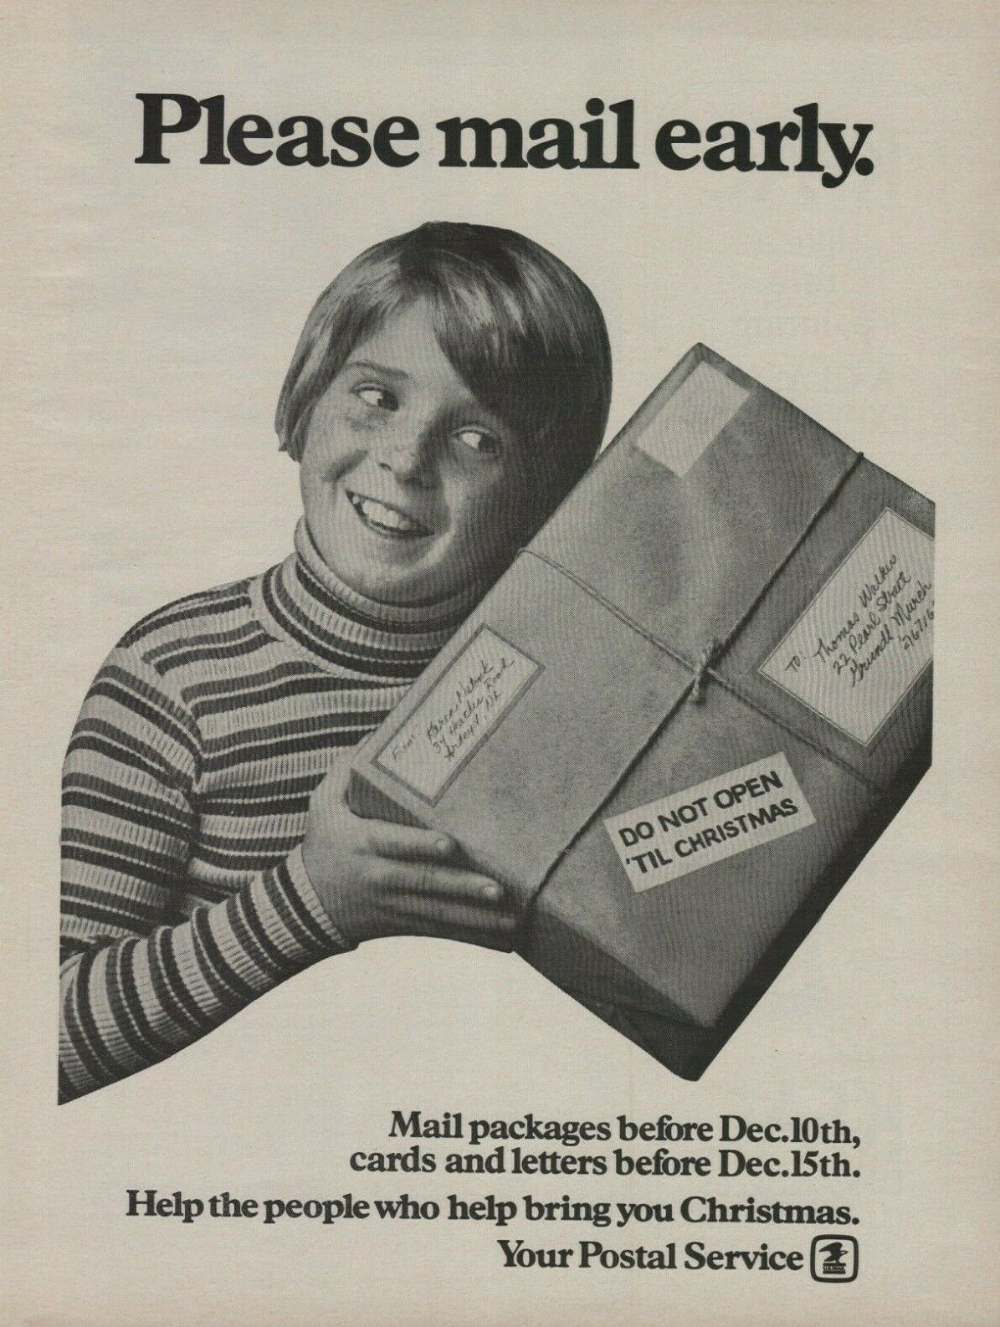 Usps Christmas Delivery Schedule 2020 1973 USPS Postal Service Christmas Delivery Excited Kid Holding